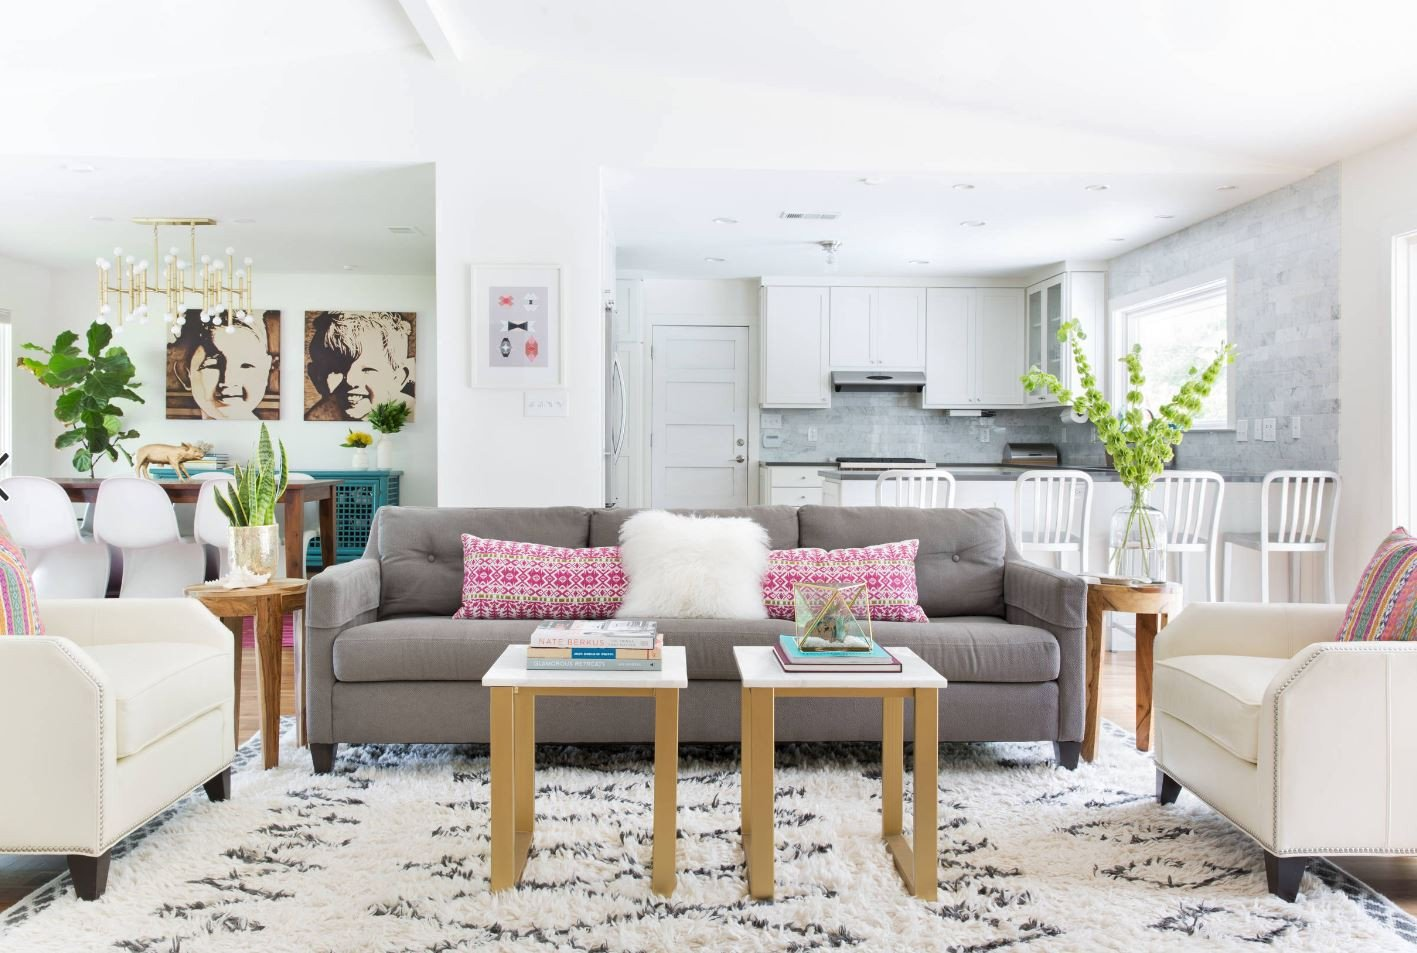 Fun Living Room Decorating Ideas 3 Ways to Brighten Your Home for Spring